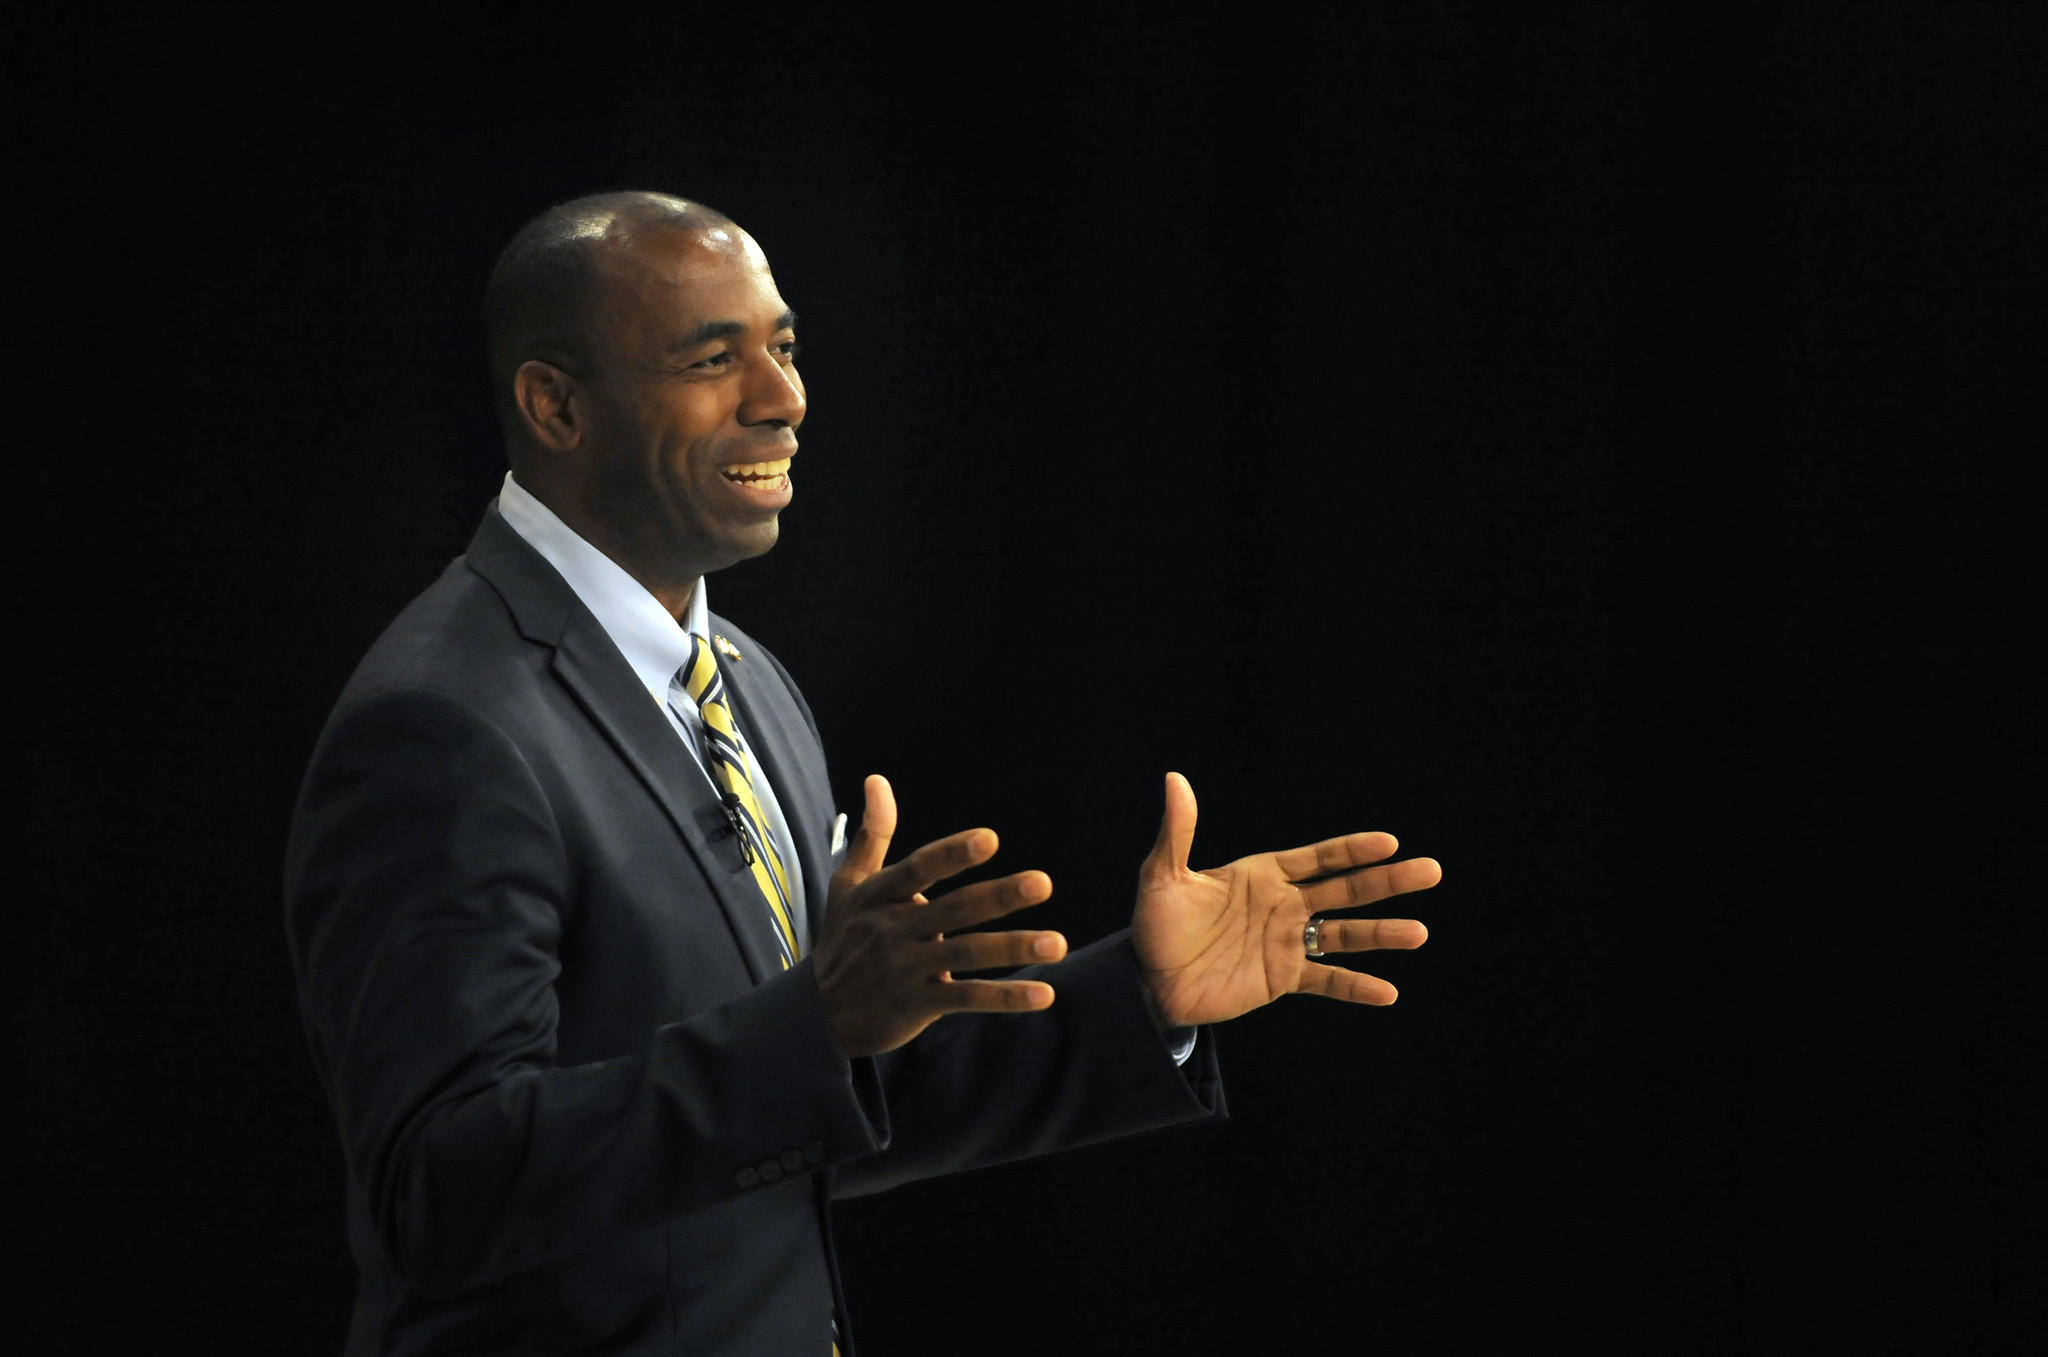 Charles Lollar speaks during the taped debate this afternoon.